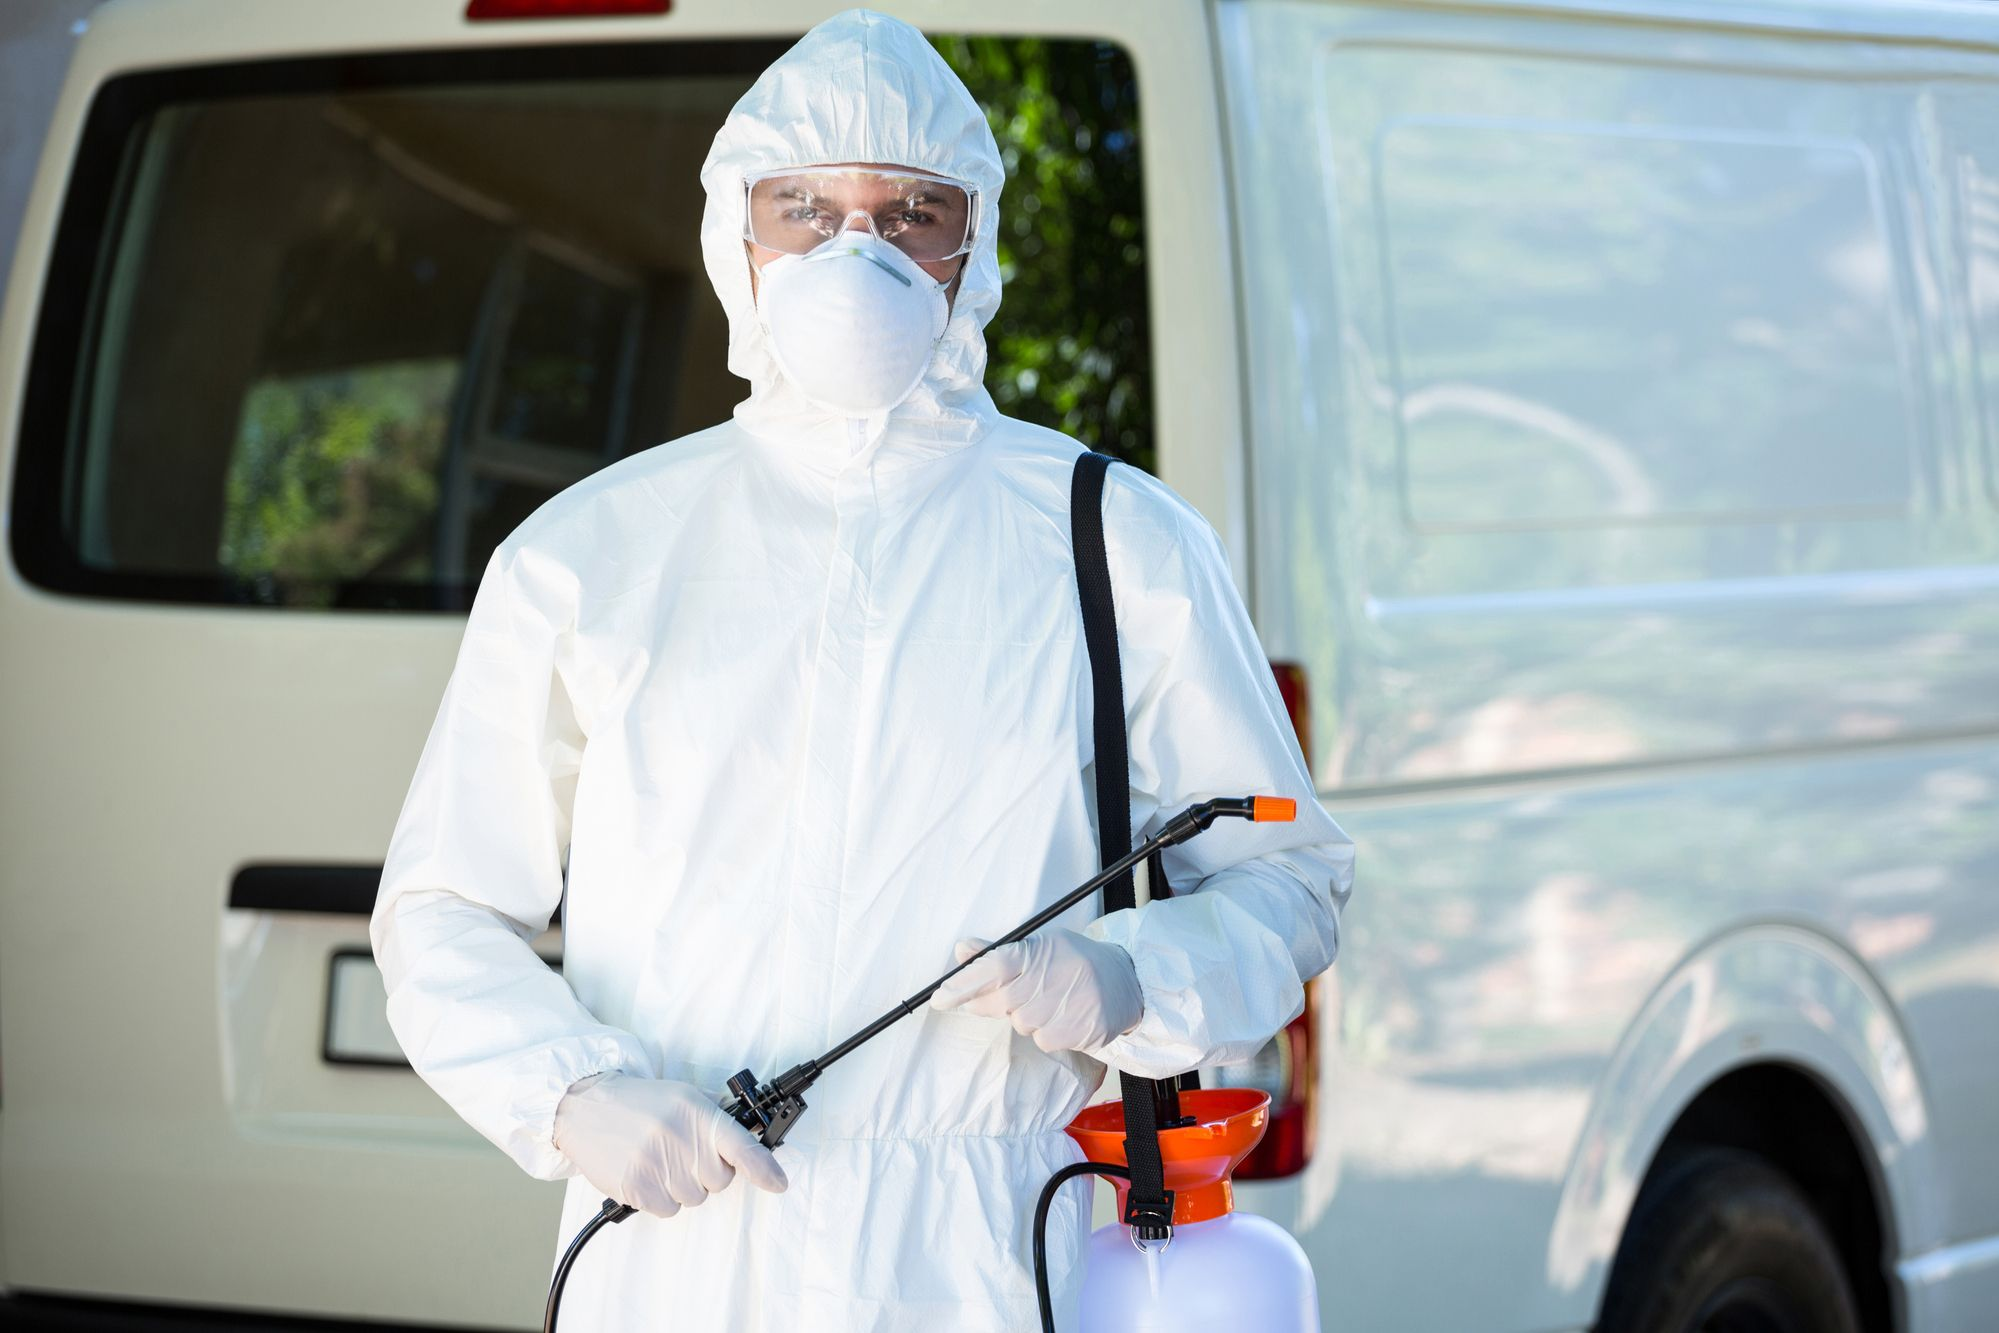 Mr. Pest Control provides PestControl and removal in